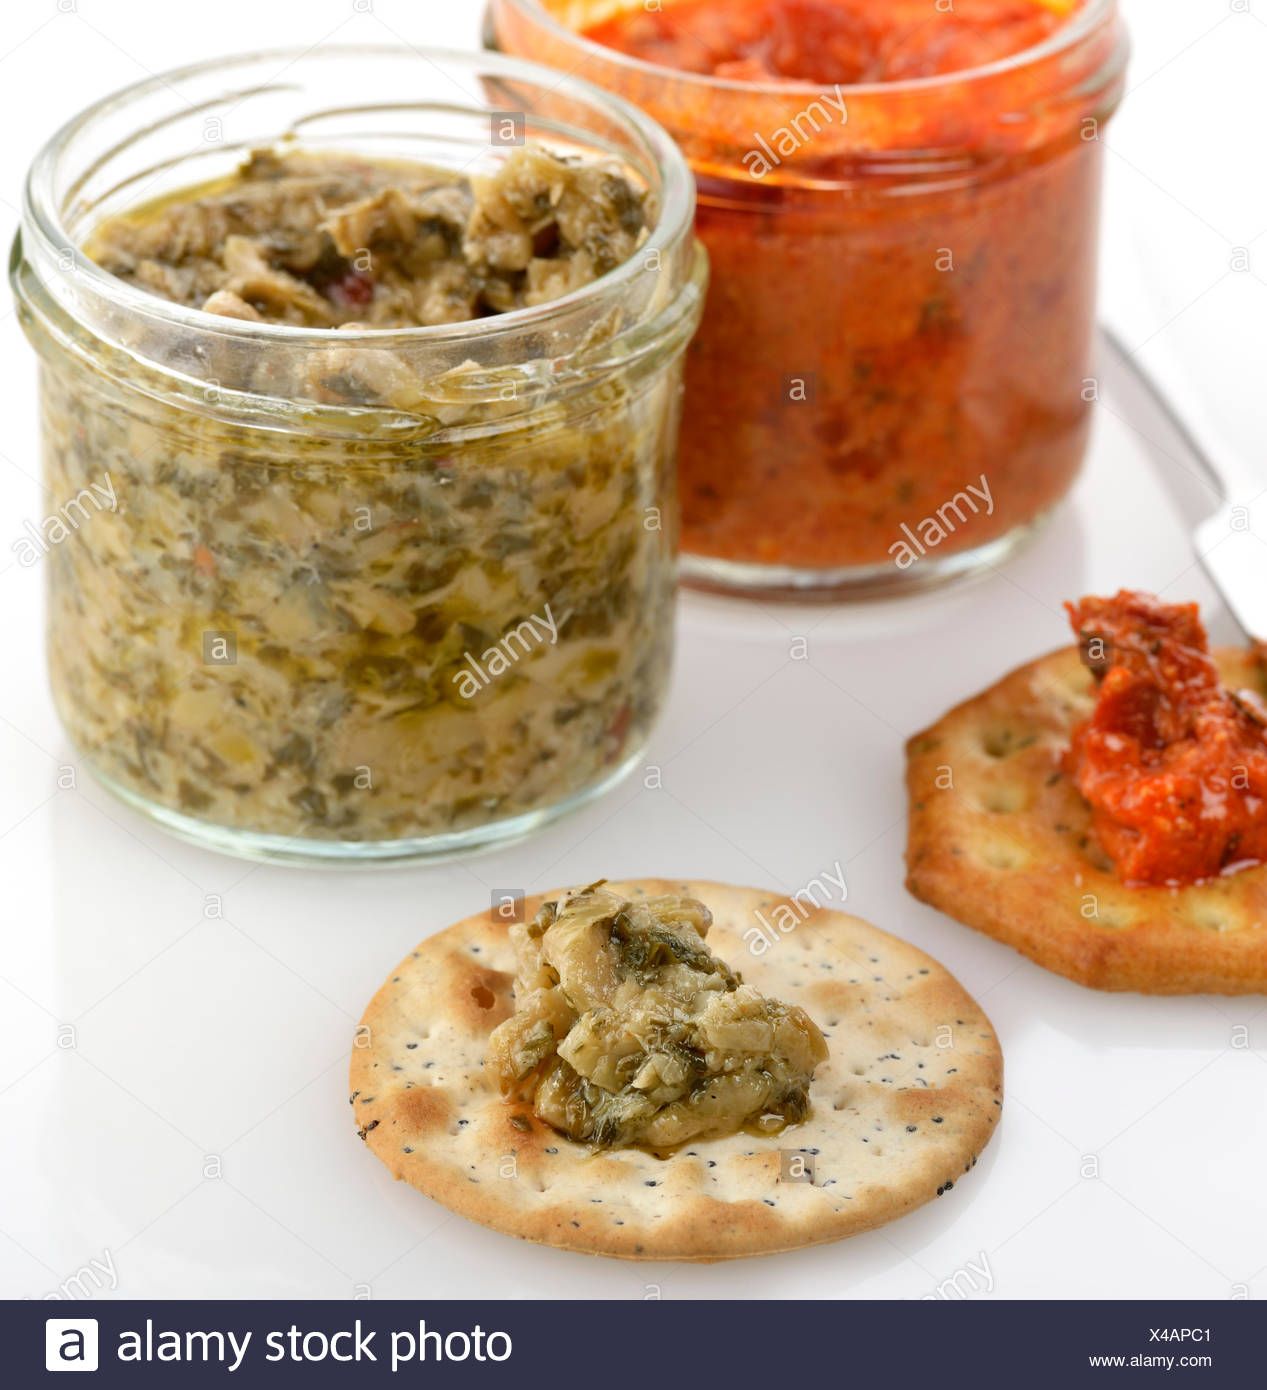 Spreads With Crackers - Stock Image